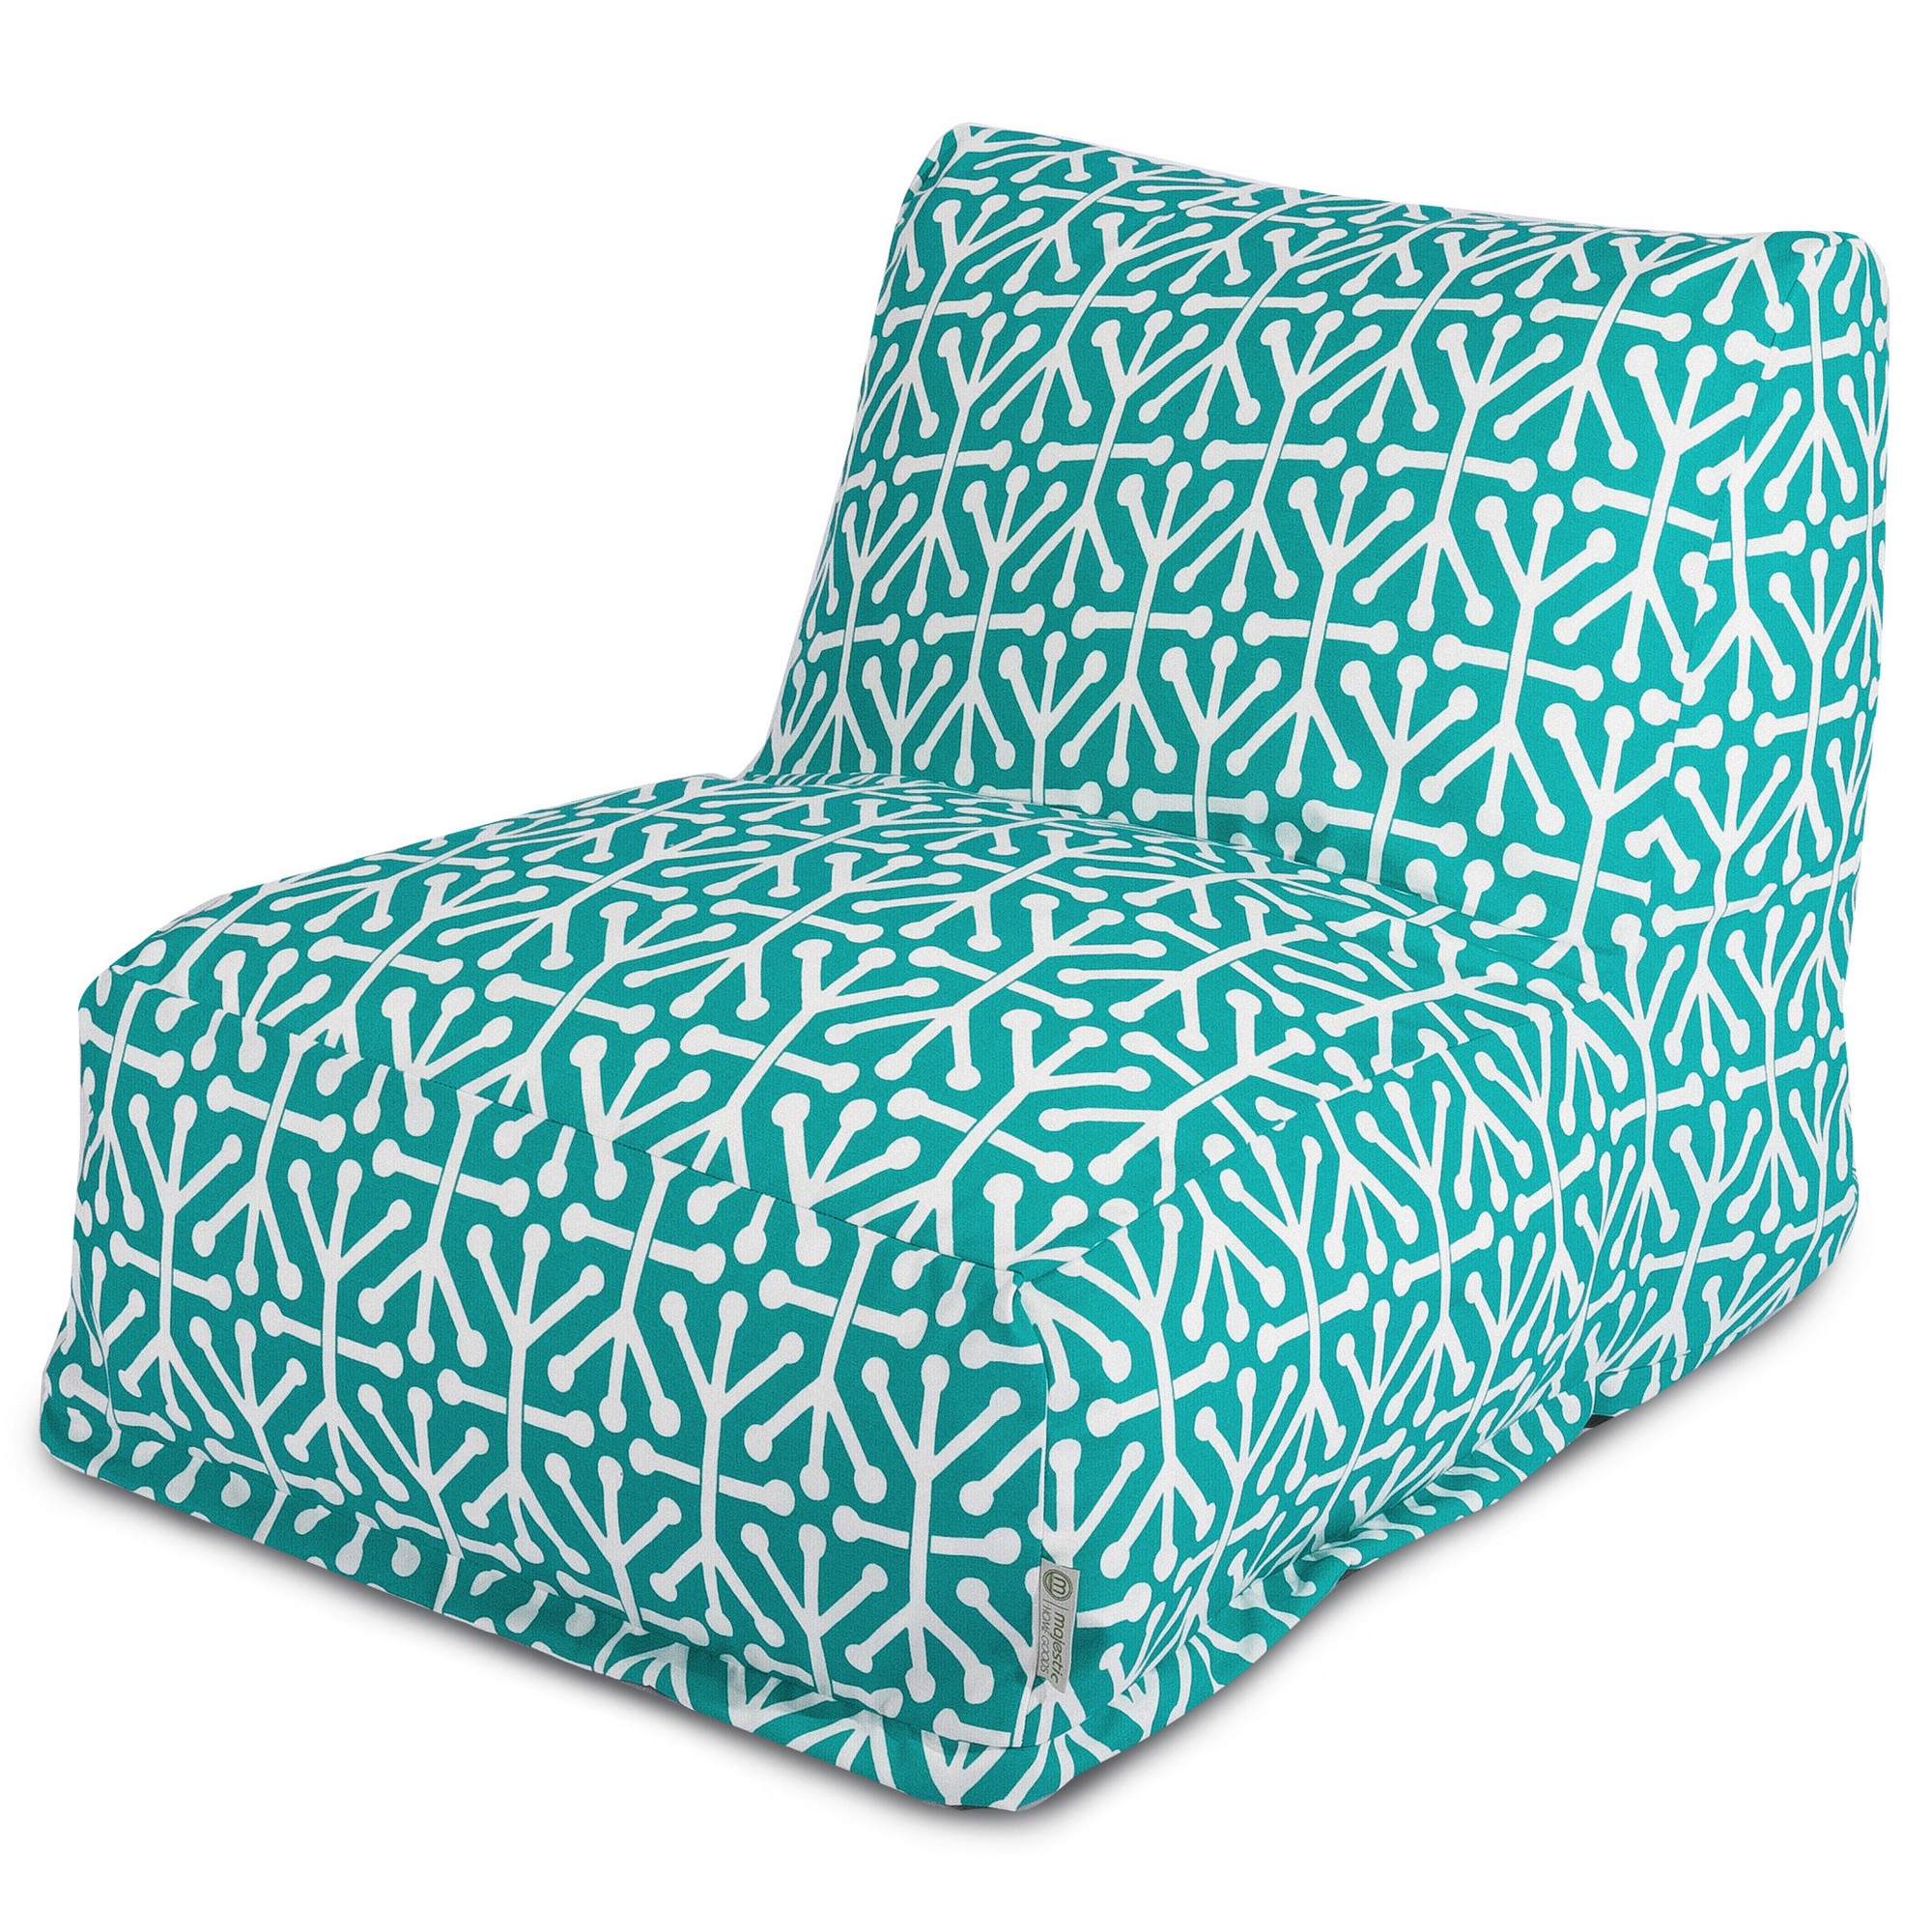 Majestic Home Goods Indoor Outdoor Pacific Aruba Chair Lounger Bean Bag 36 in L x 27 in W x 24 in H